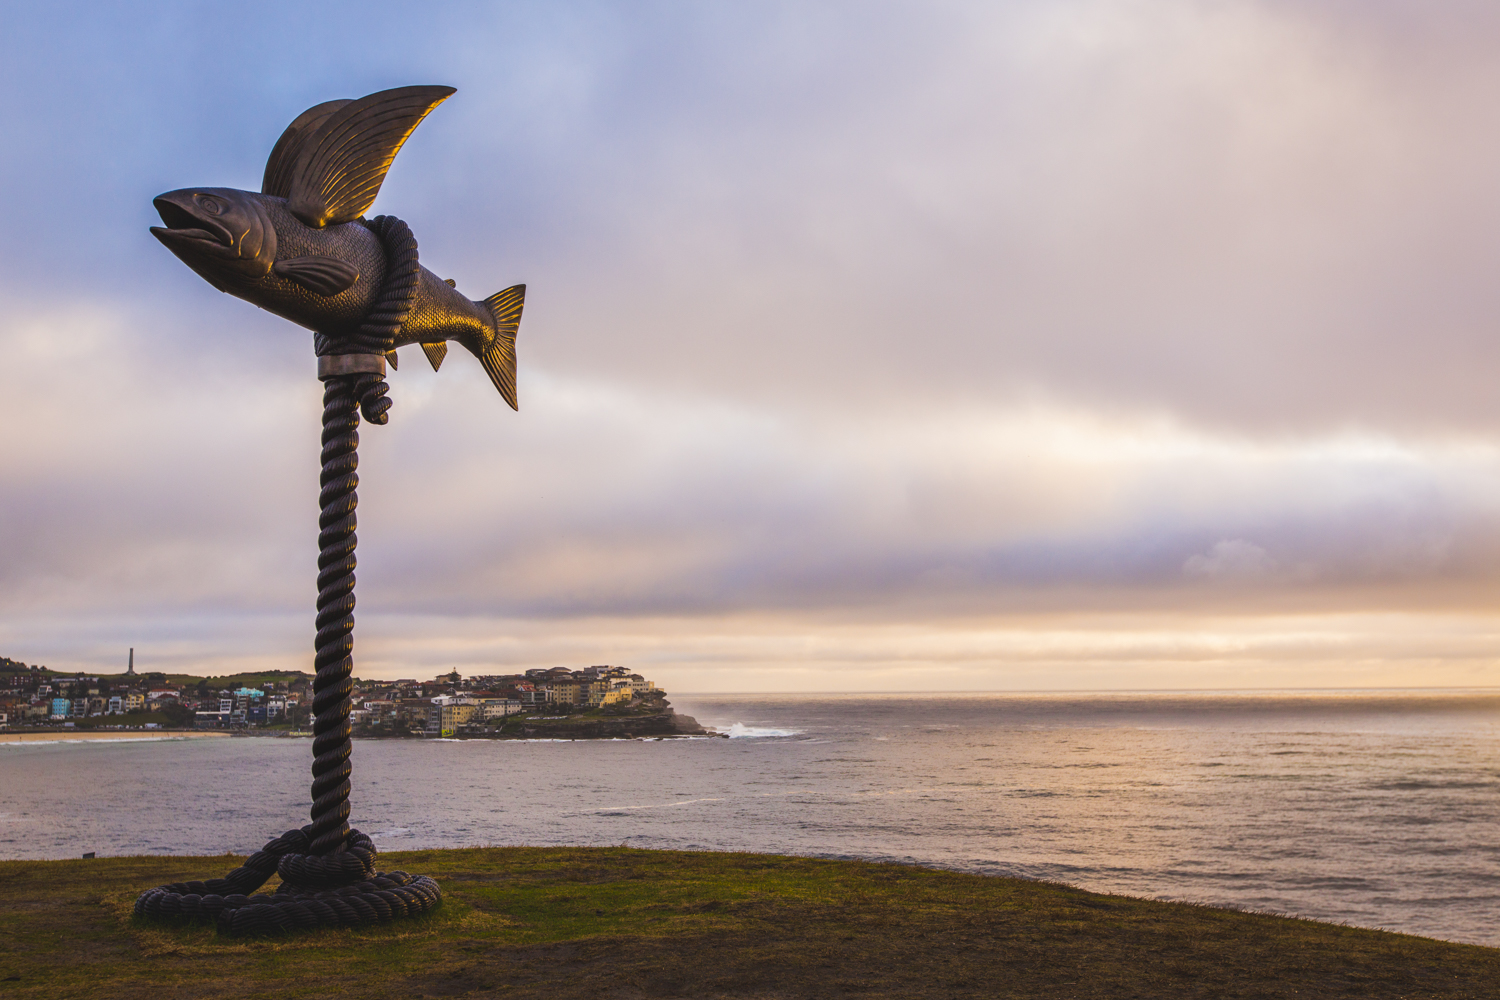 Gillie & Marc Schattner, flying fish, Sculpture by the Sea, Bondi 2015. Photo Jessica Wyld